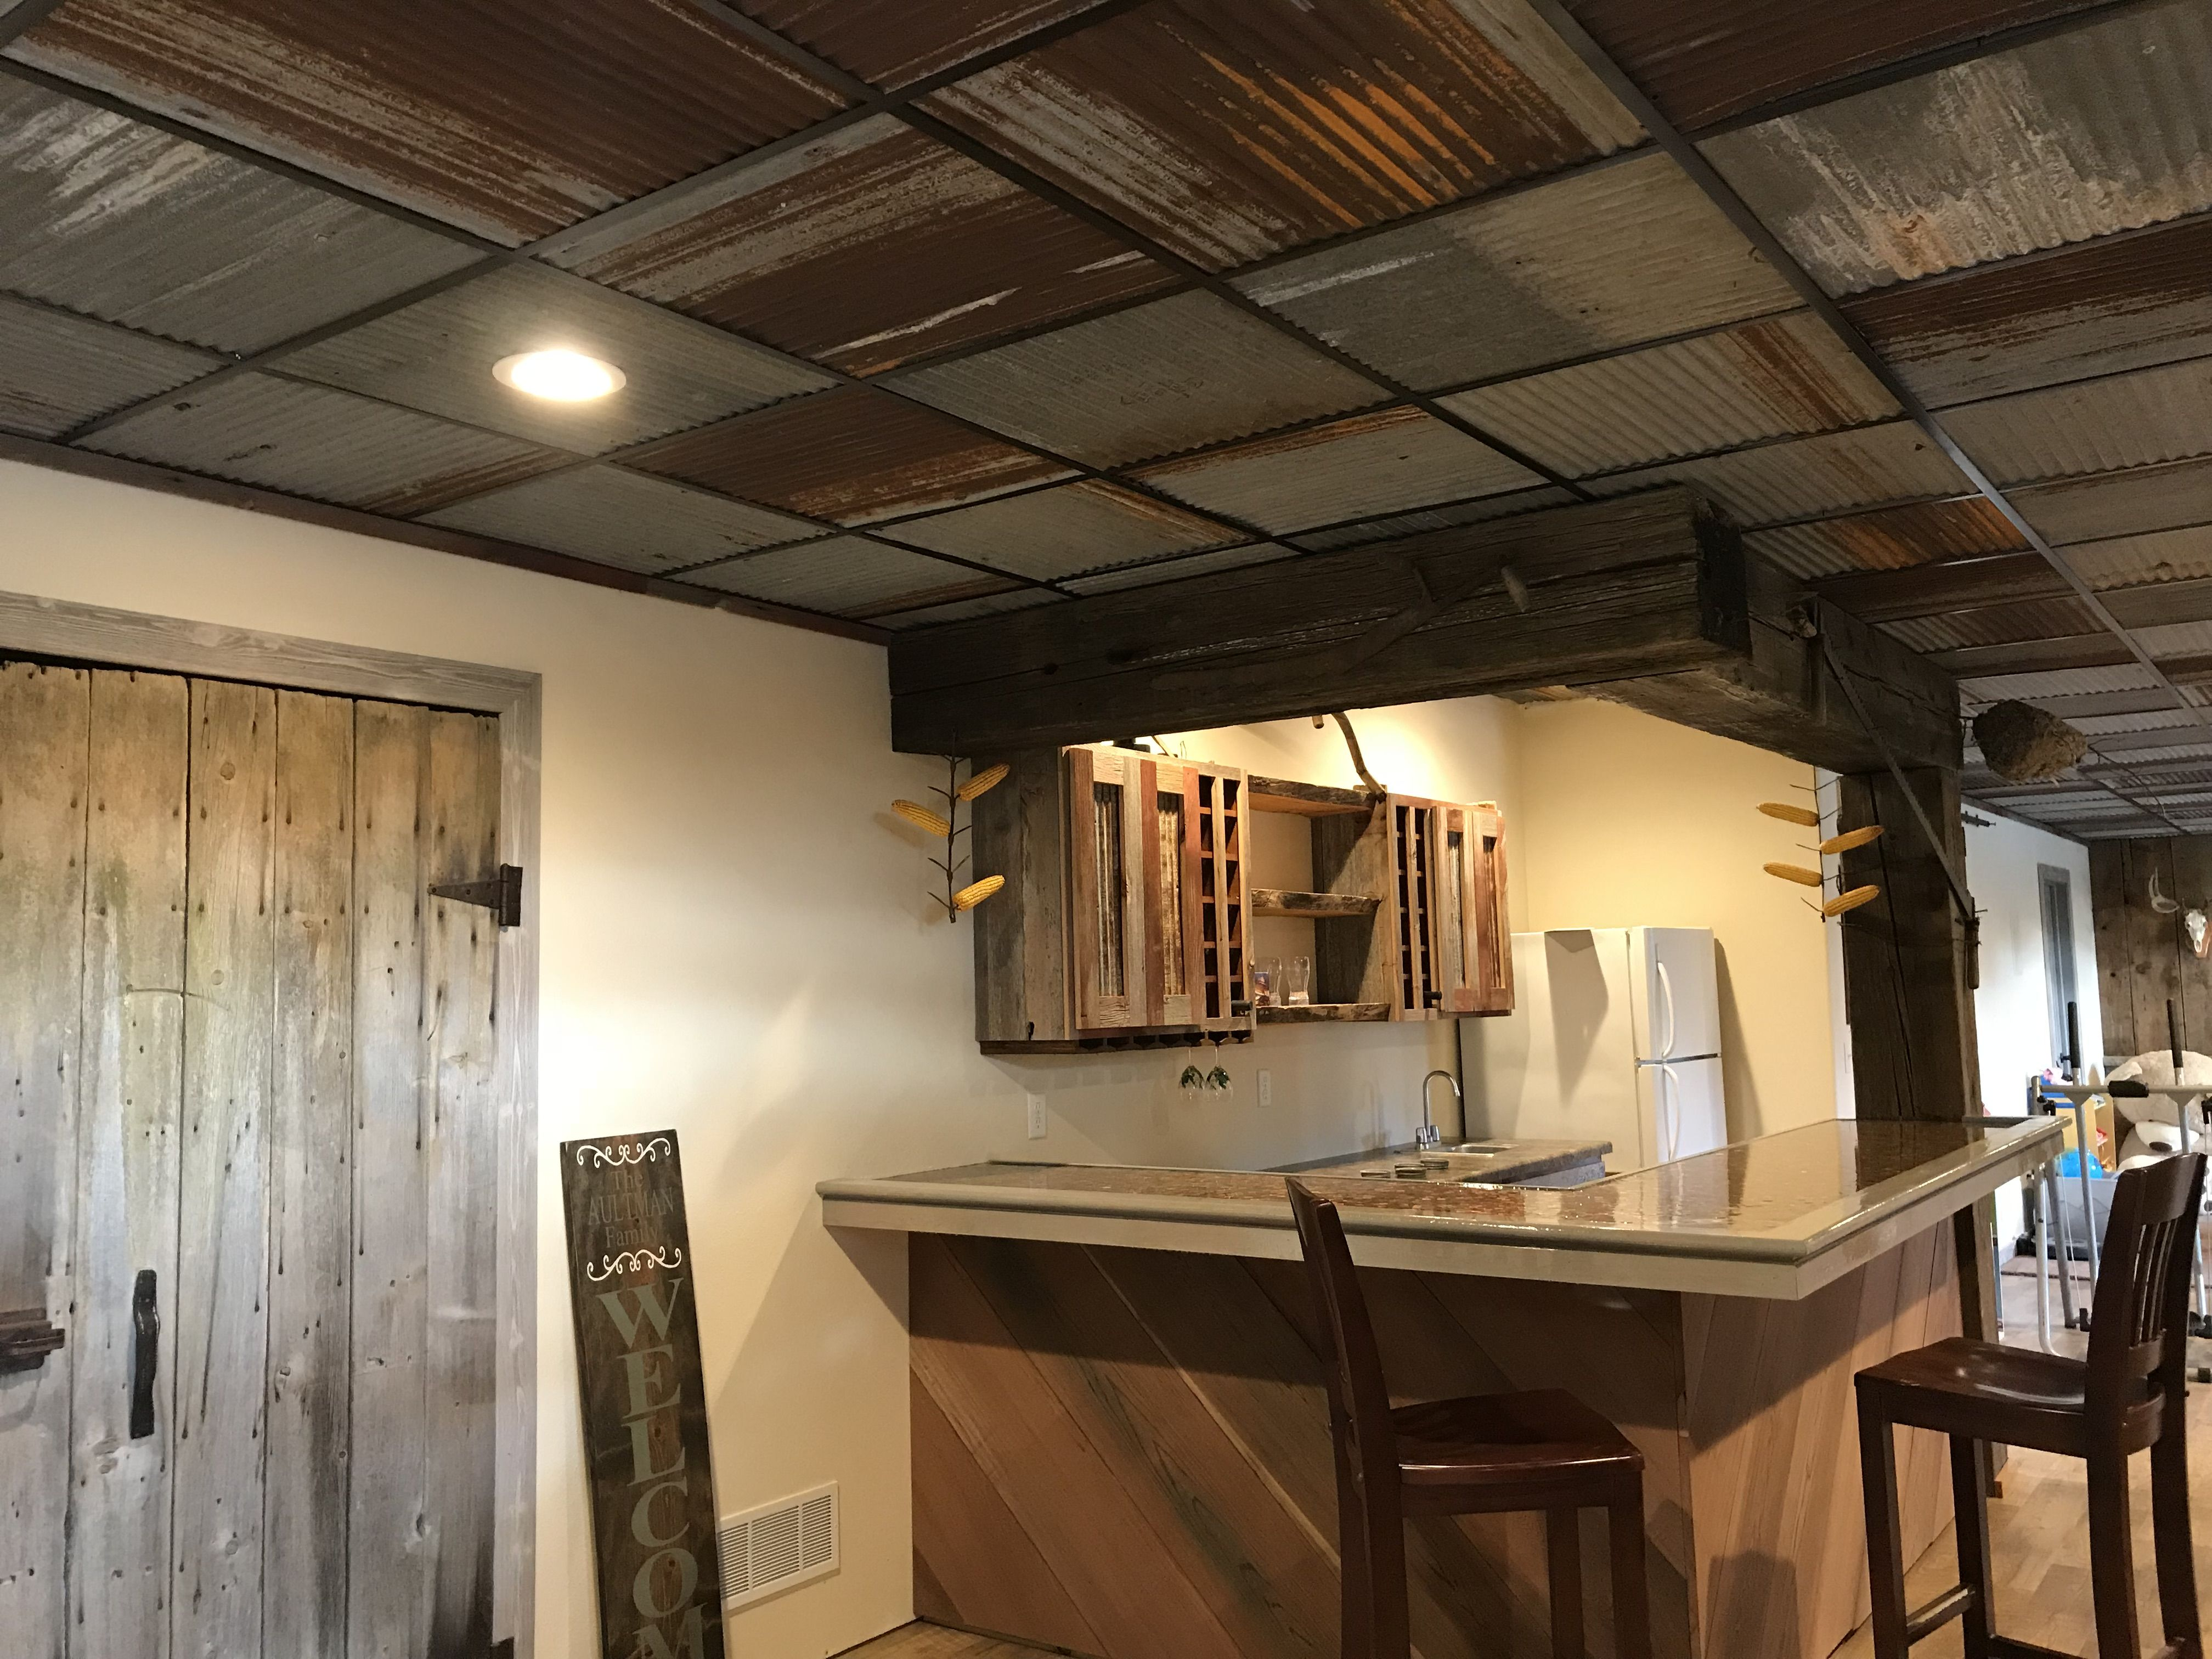 Hip Cathedral With Old Barn Tin Barn Tin Rustic Tin Ceilings Tin Ceiling